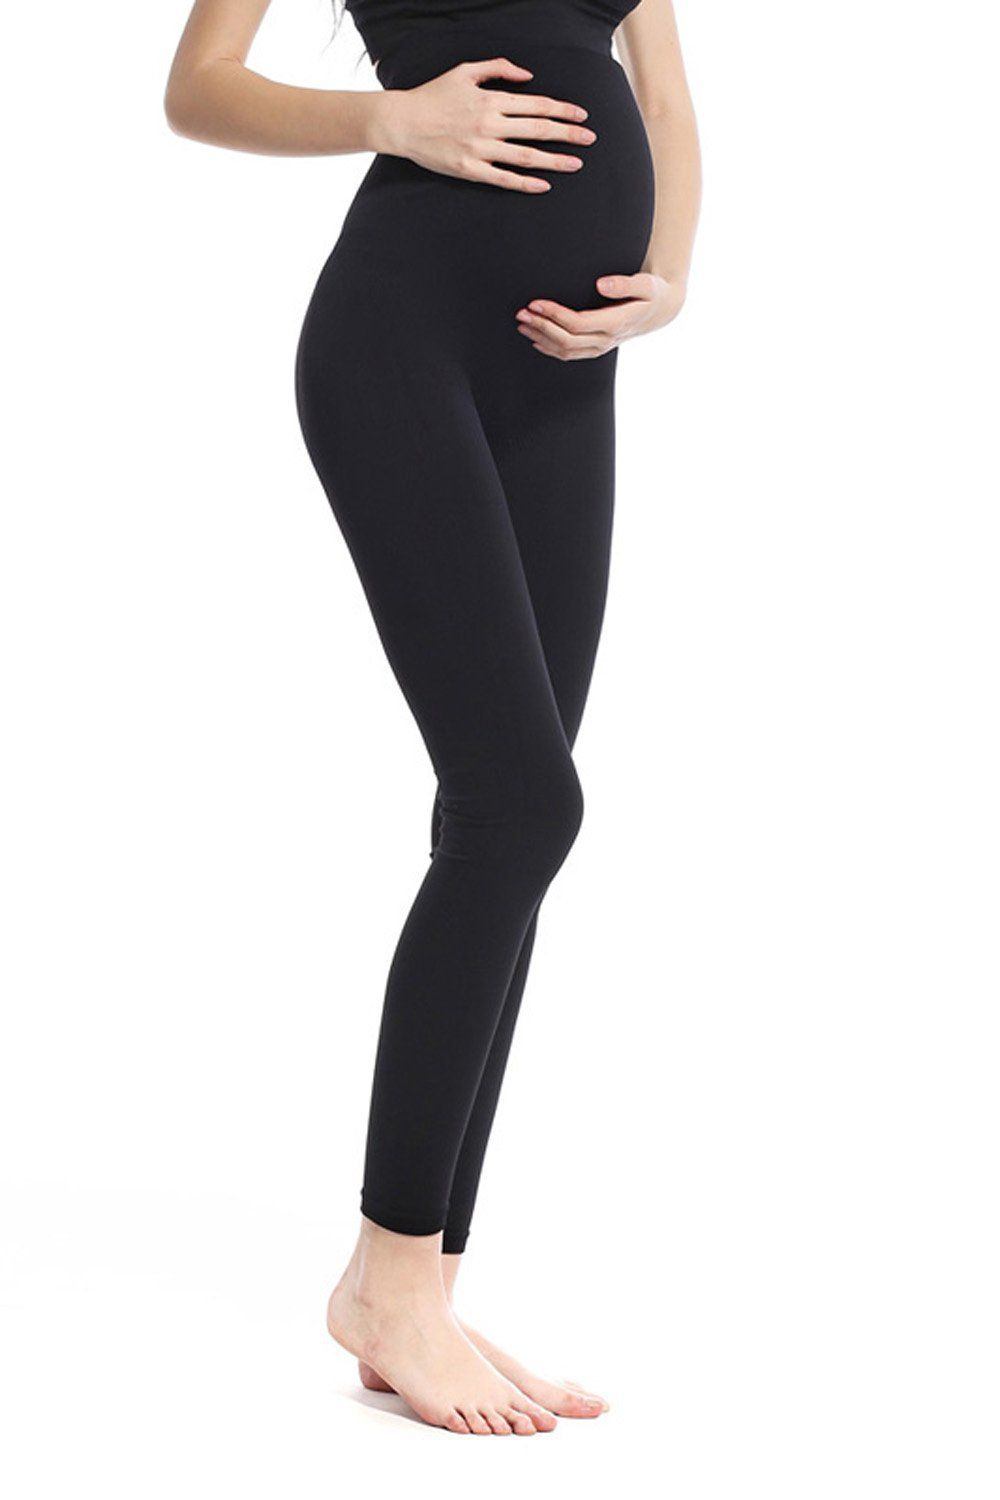 14c2c5ac1eb83 pregnancy workout - Khaya Womens Seamless Maternity Leggings Small Black *  Click photo for even more details. (This is an affiliate link).  #fitpregnancy